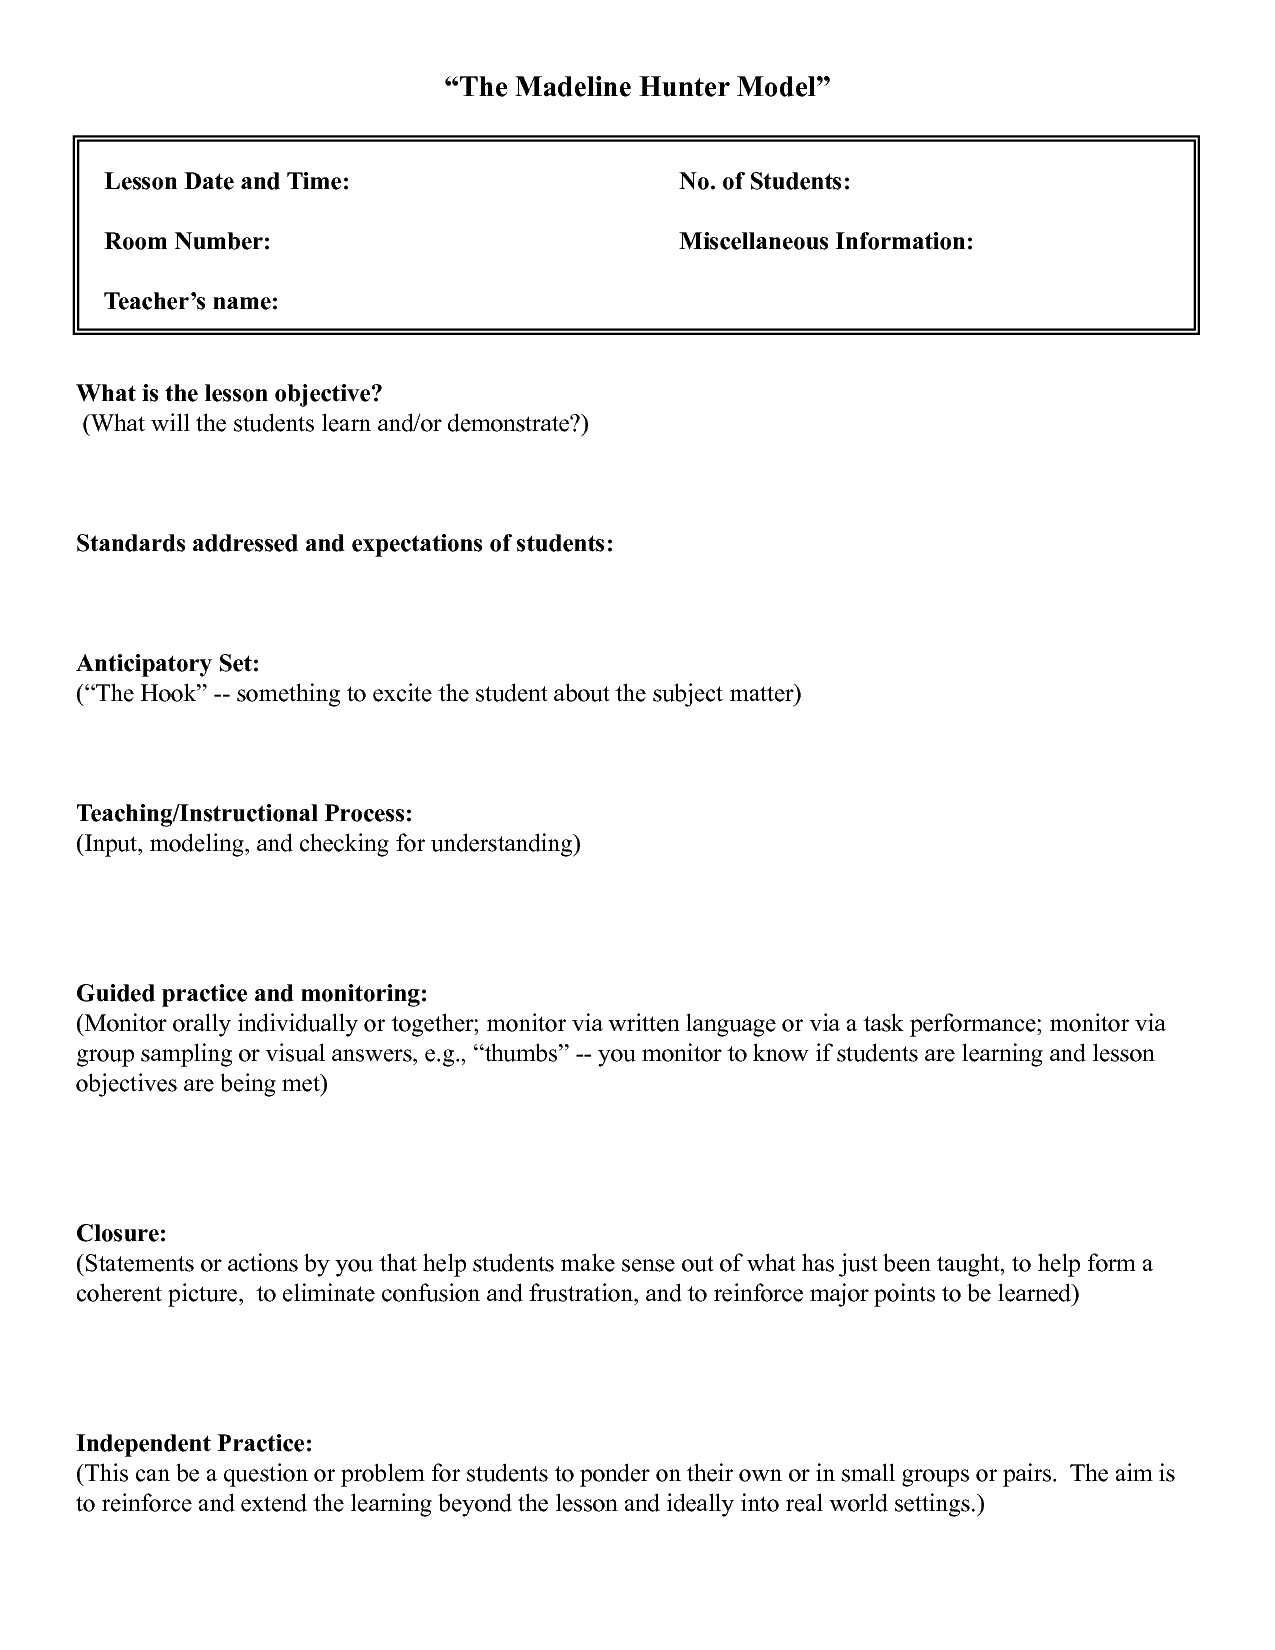 Five Common Mistakes In Writing Lesson. | Lesson Plan With Madeline Hunter Lesson Plan Template Blank